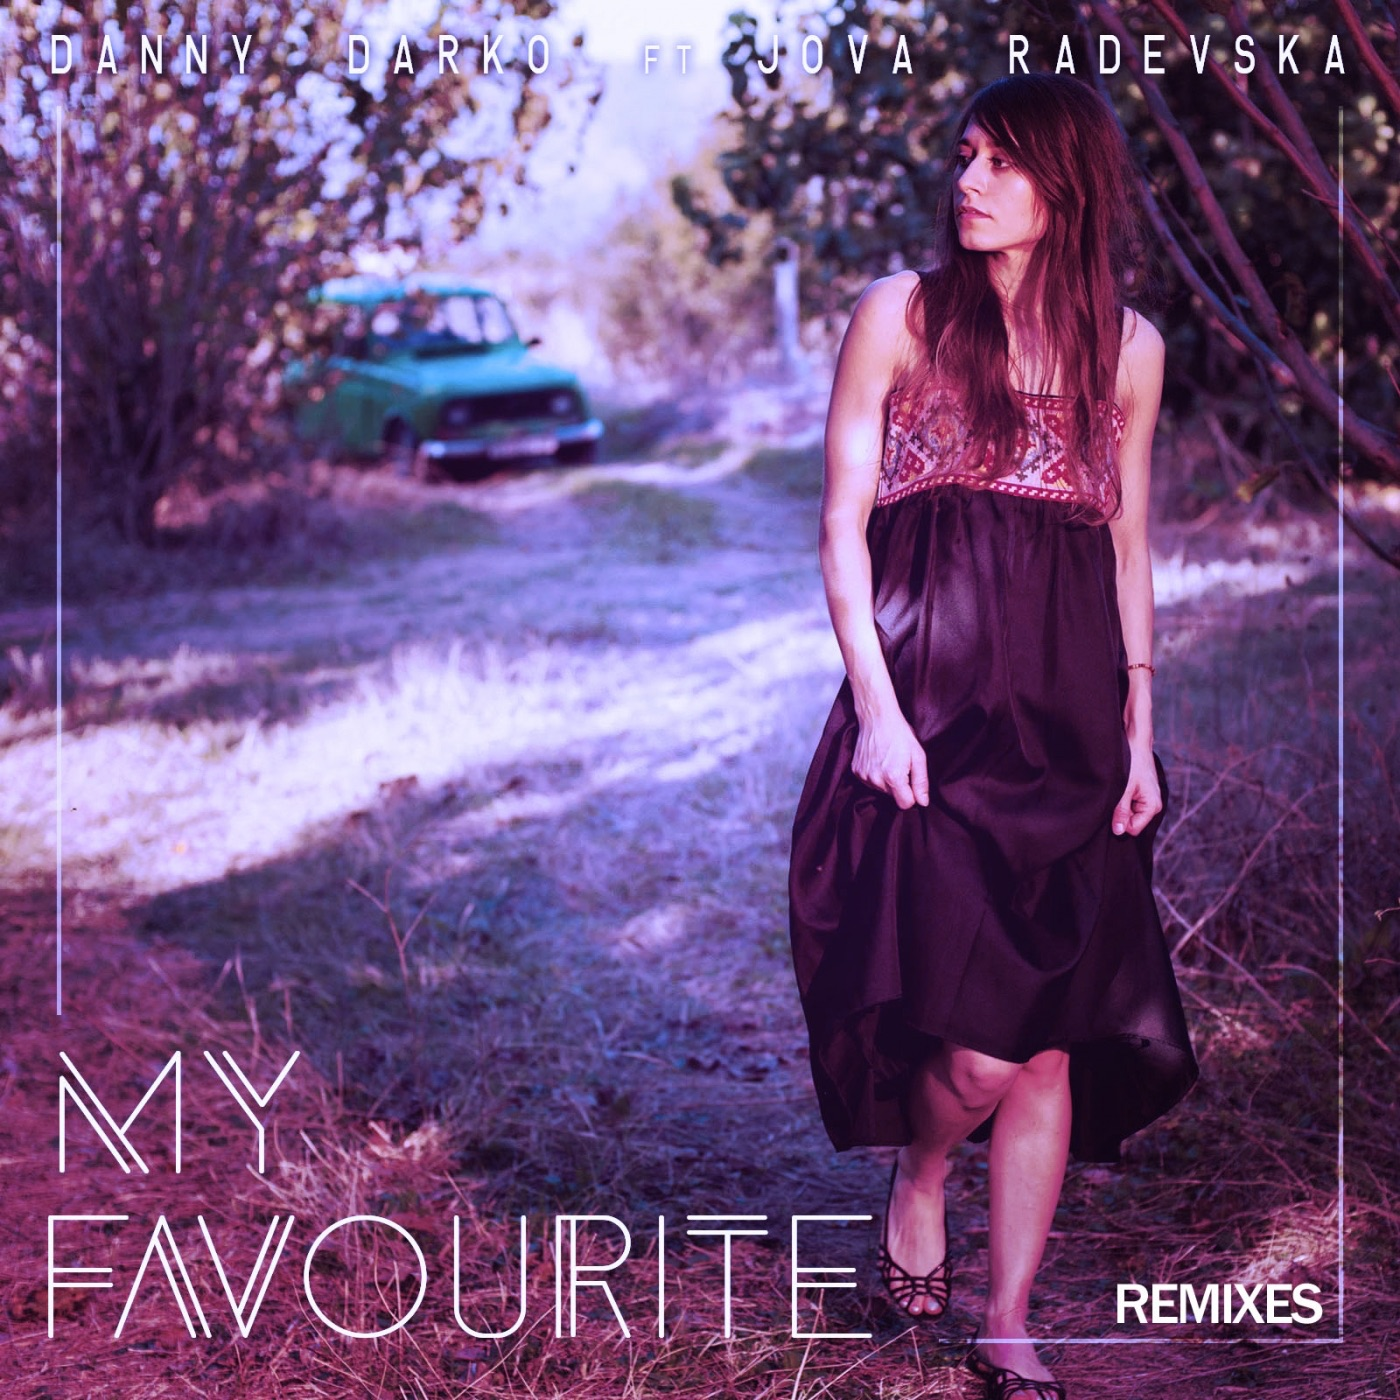 My Favourite Remixes, Pt. 2 (feat. Jova Radevska) - EP